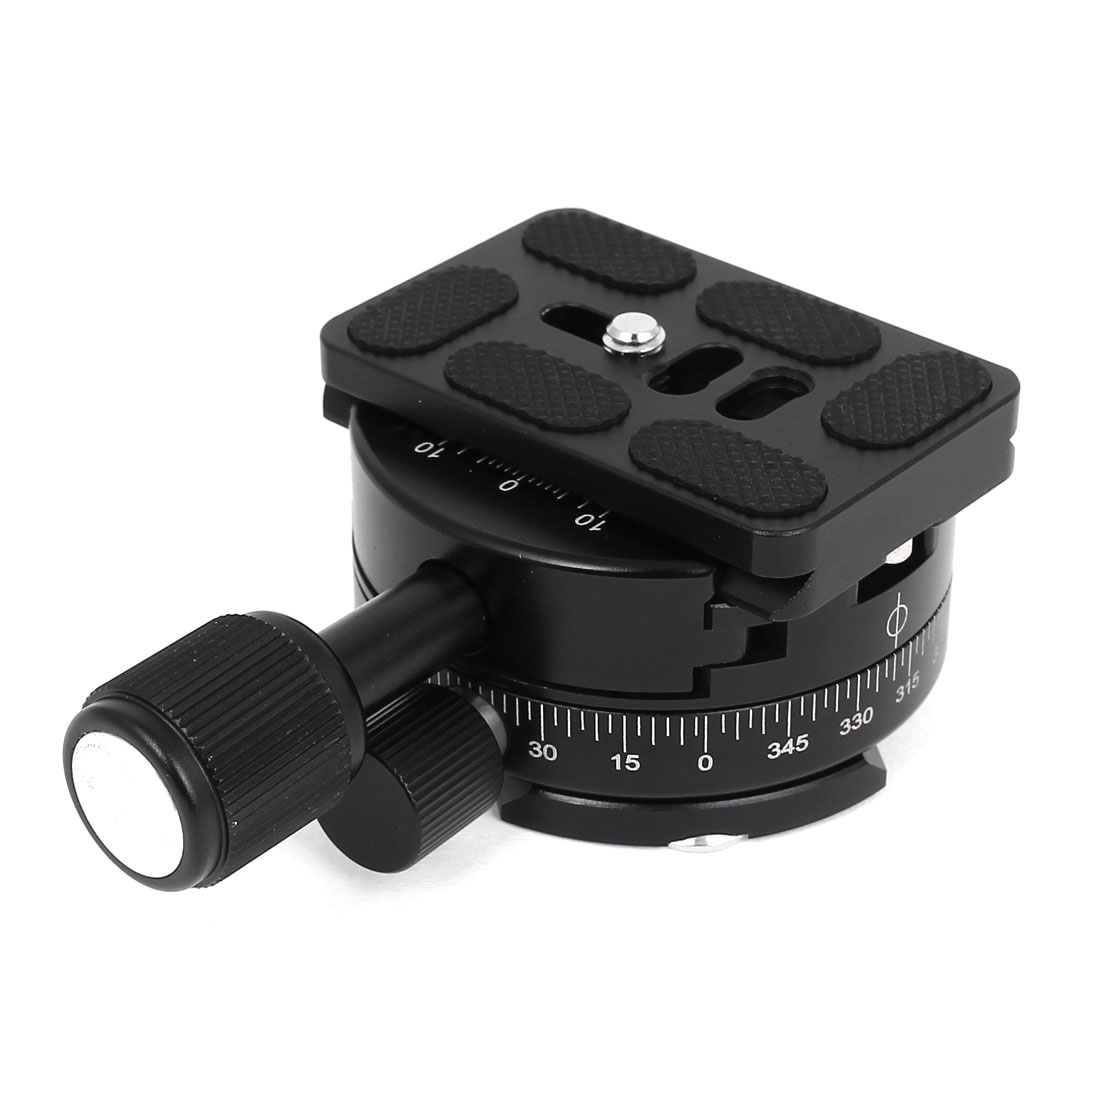 Camera Tripod Head 8kg Load 360 Degree Rotating Quick Release Plate Clamp